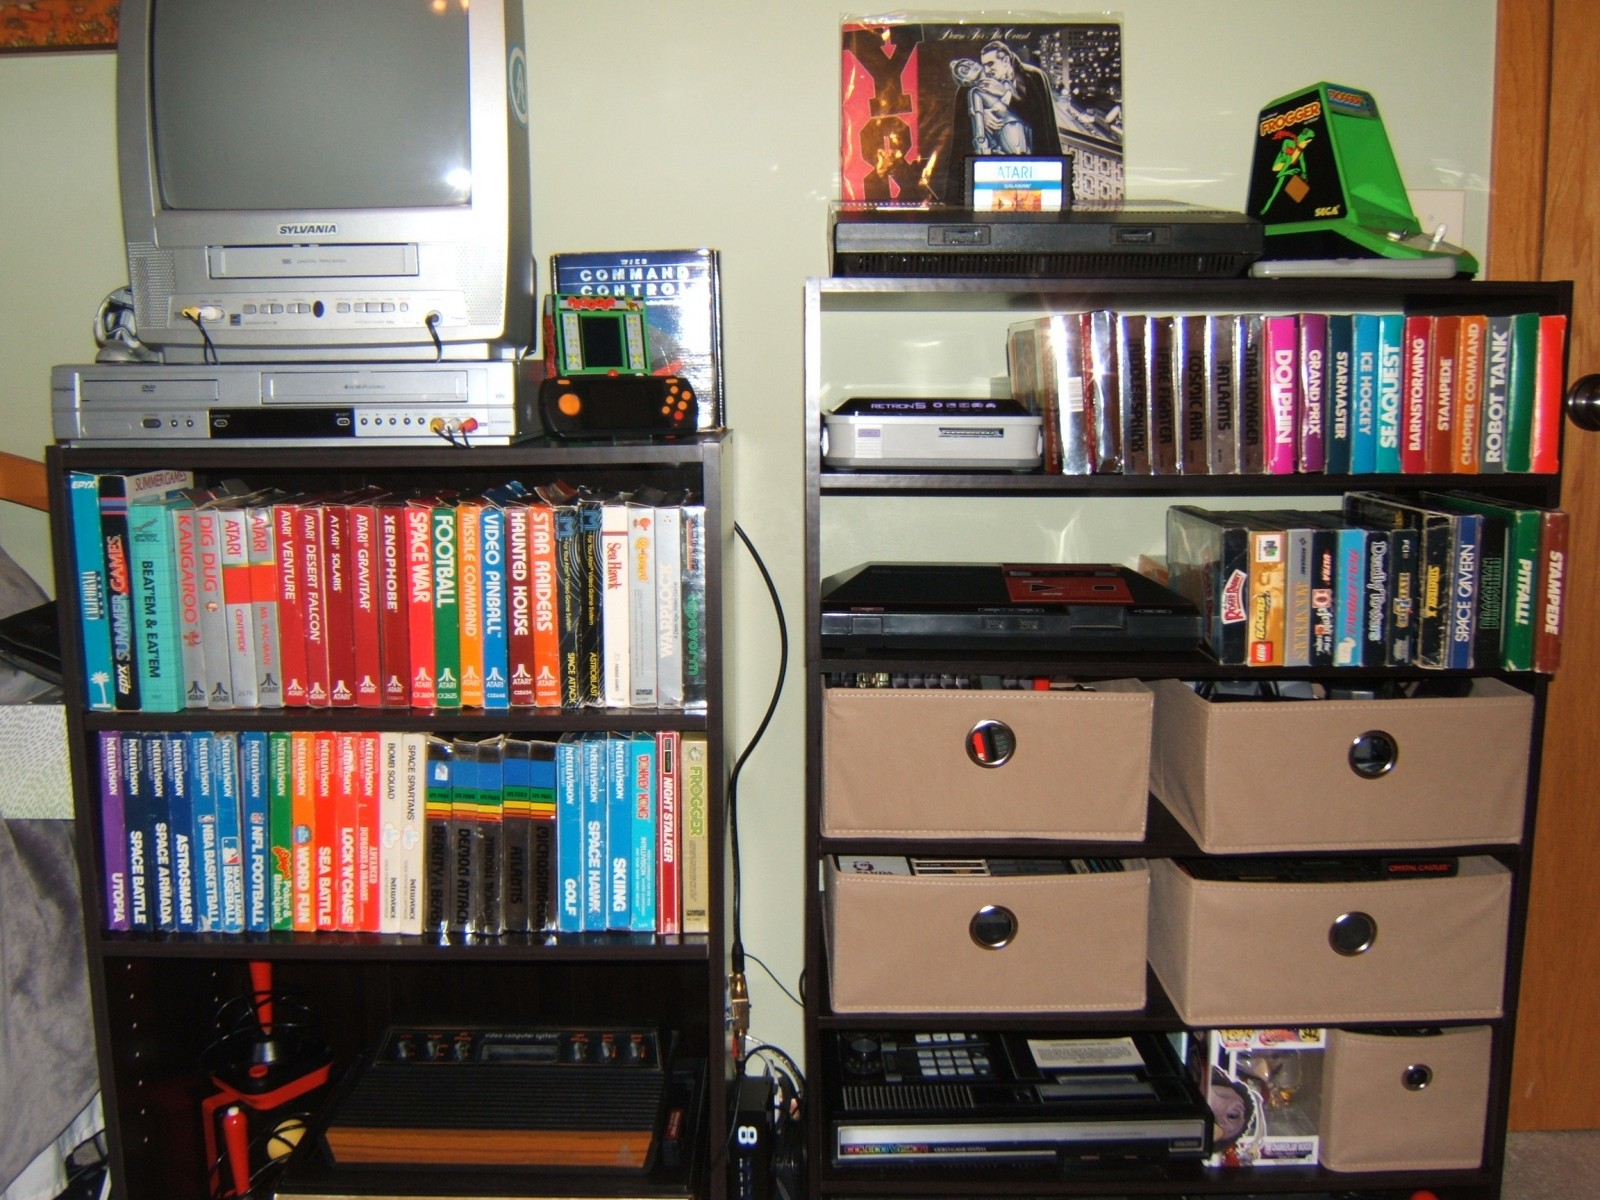 My entire collection in one picture.